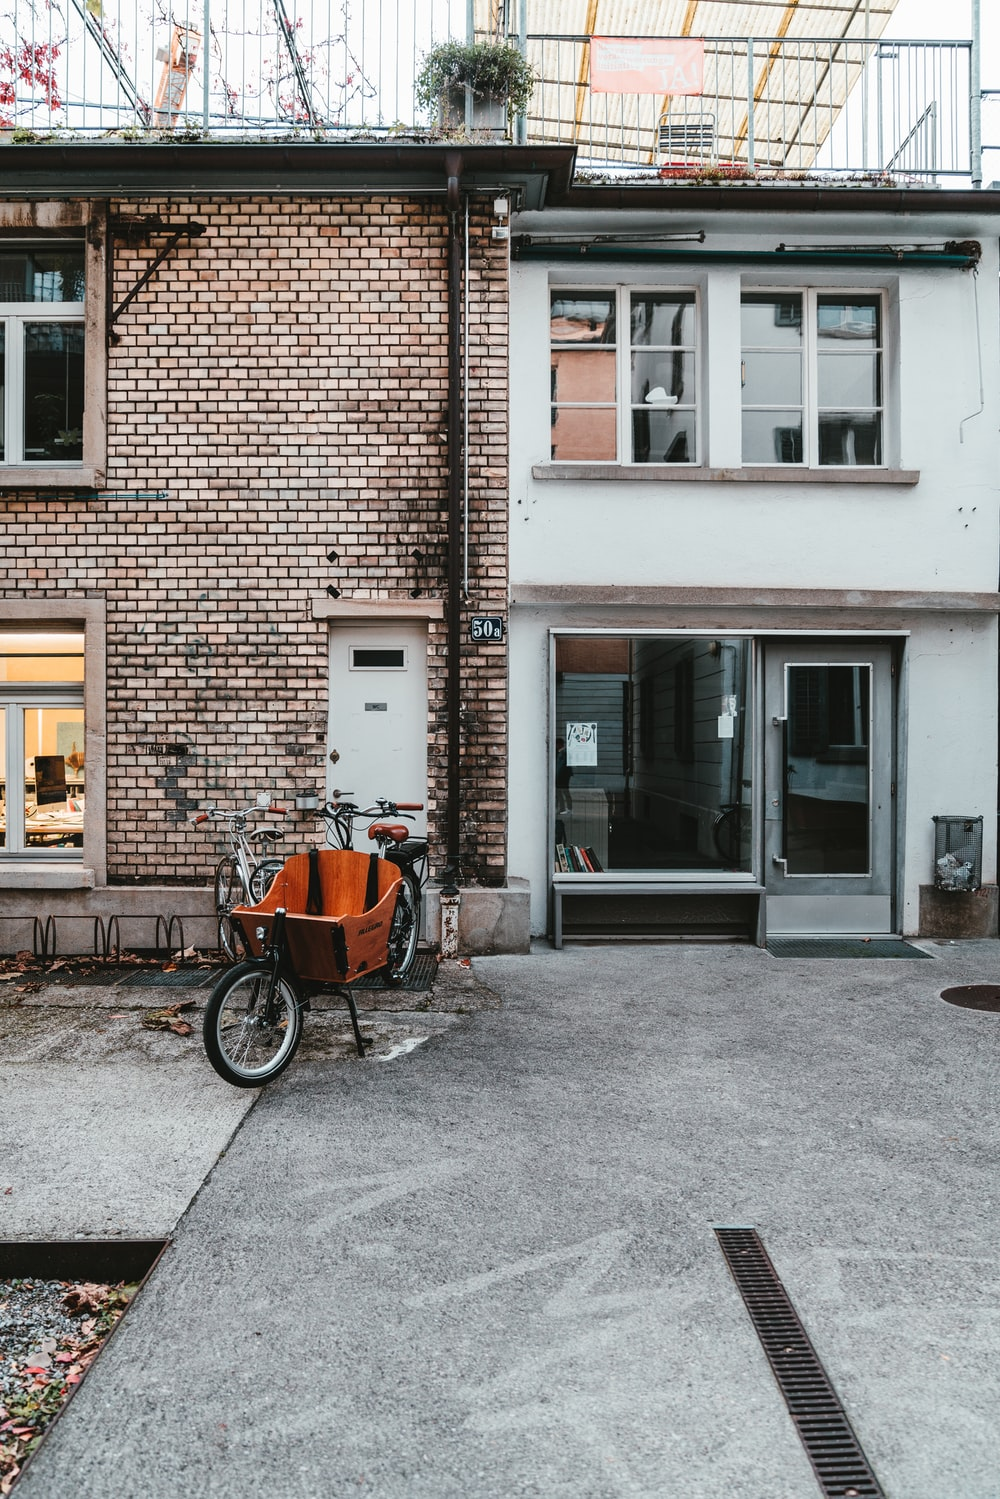 bicycle with seat parked in front of bricked building